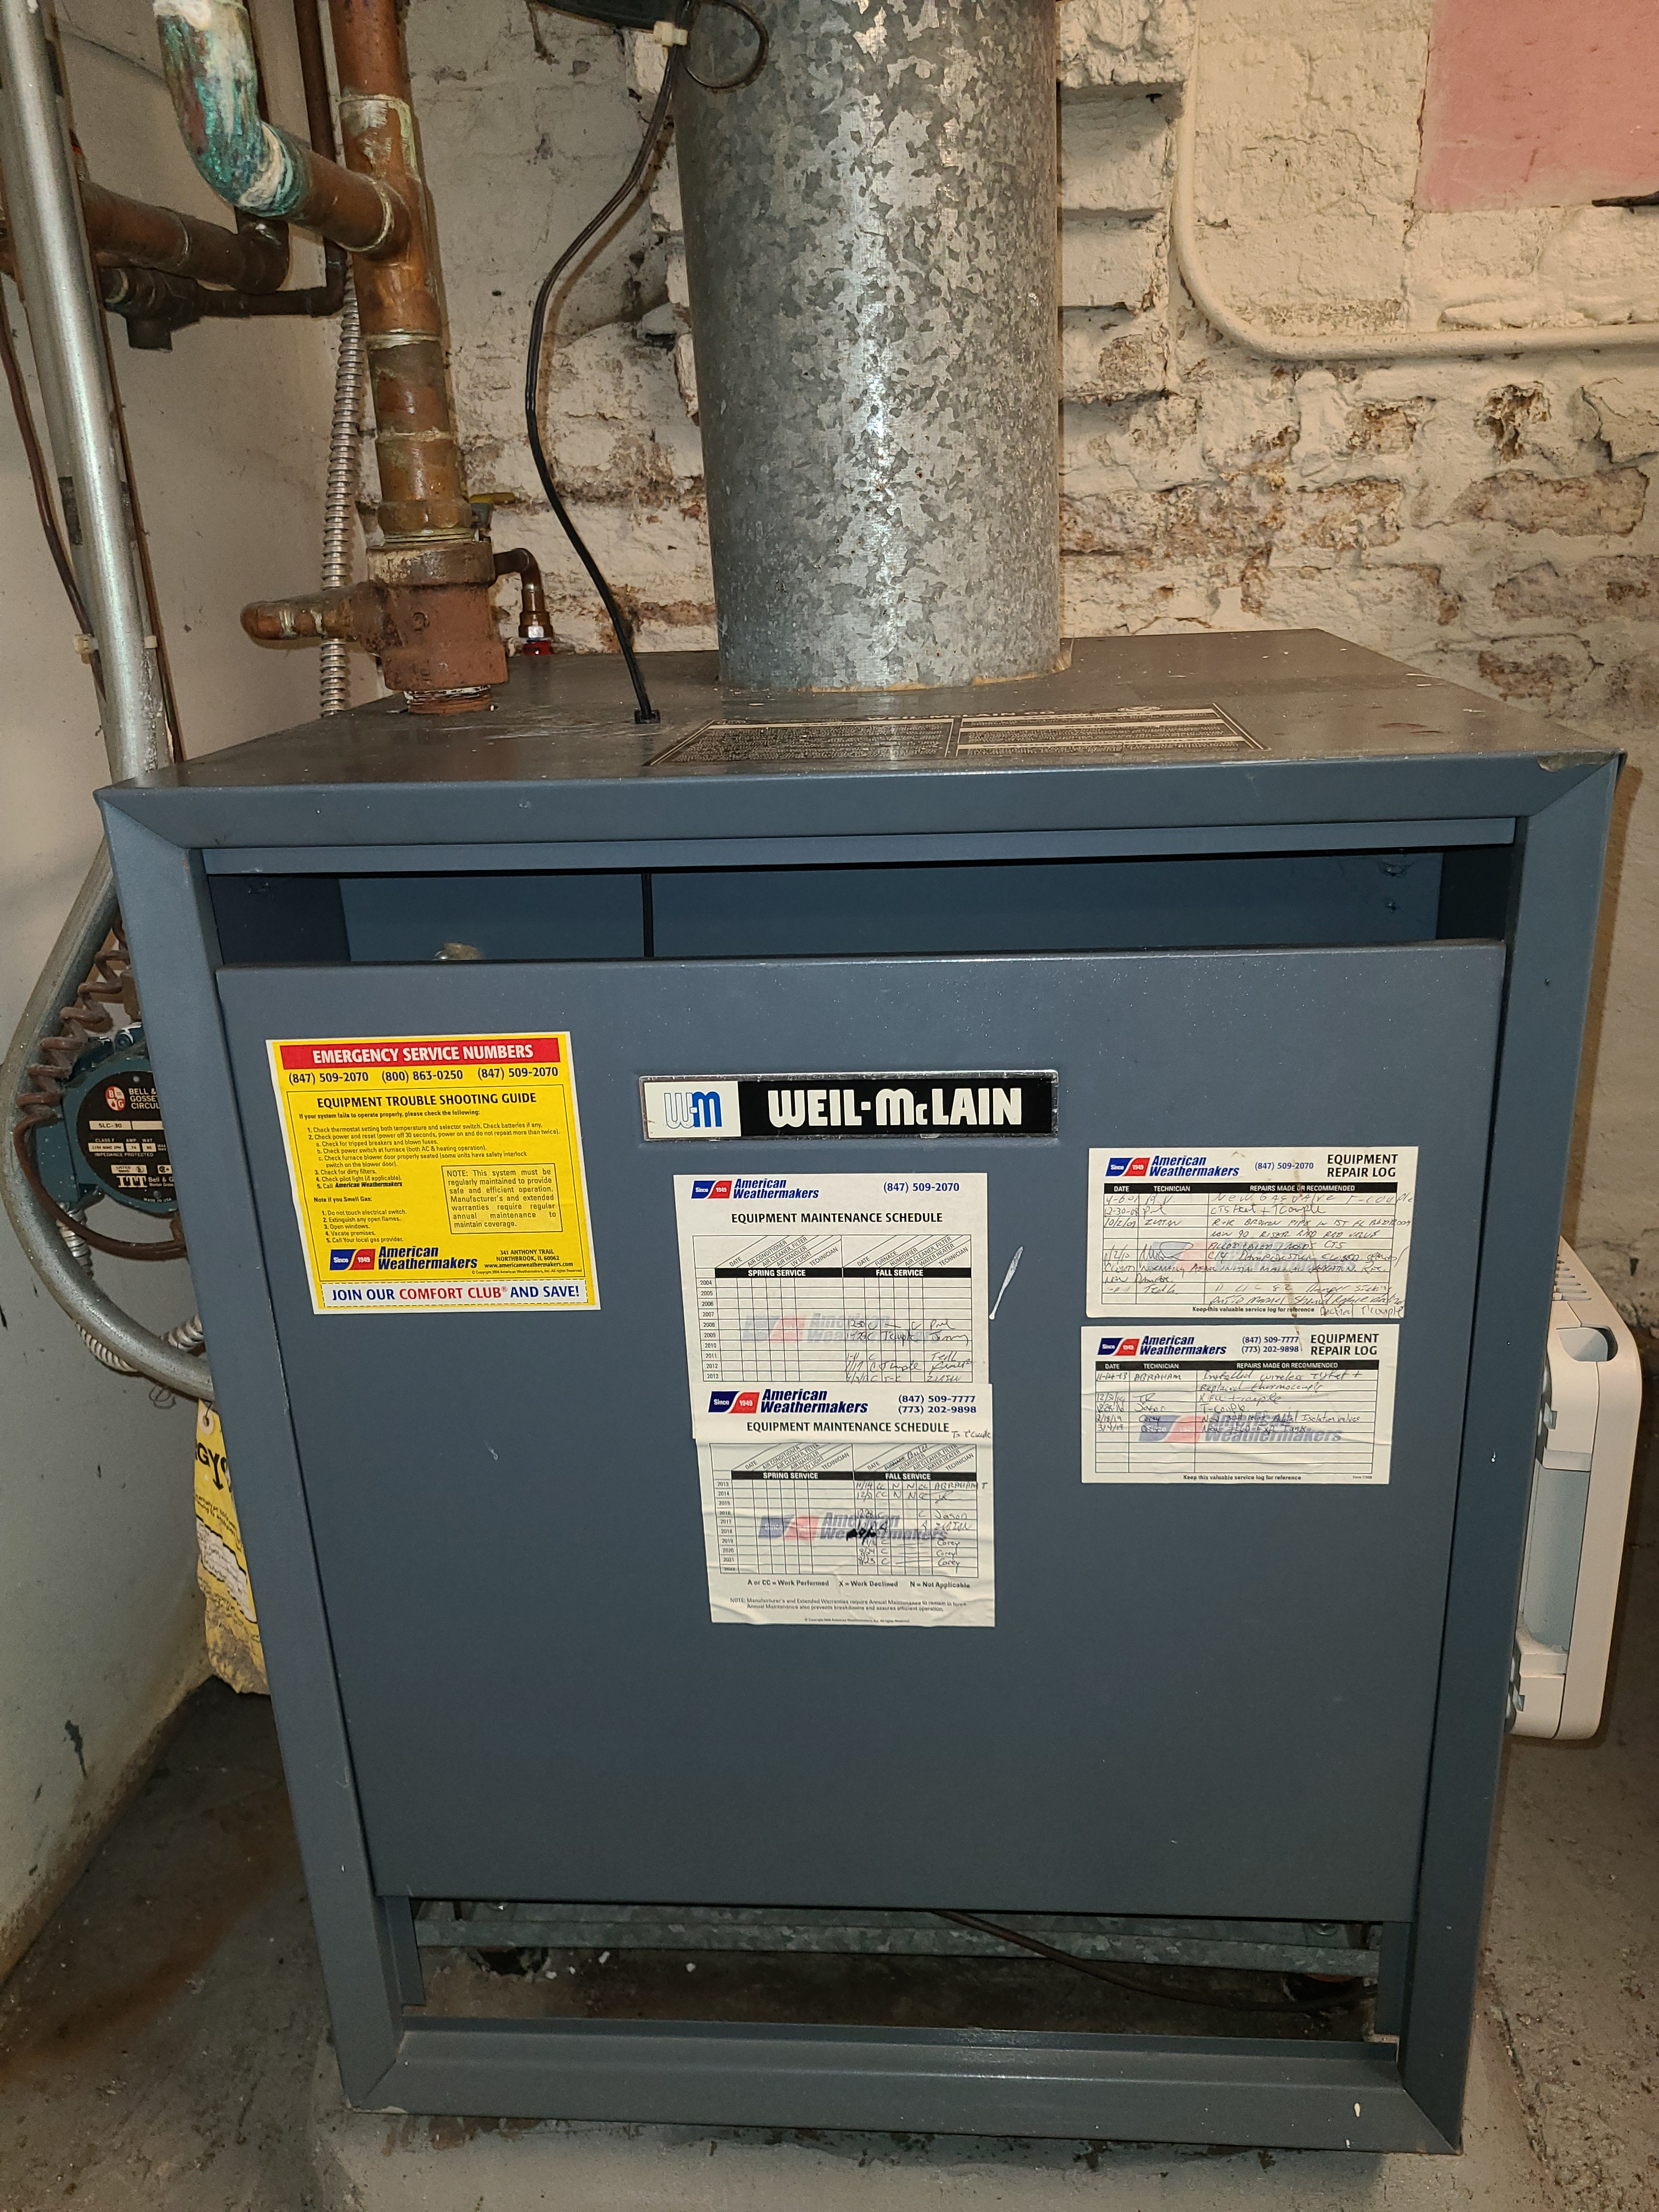 Fall boiler clean and check. System tuned up and ready for winter.